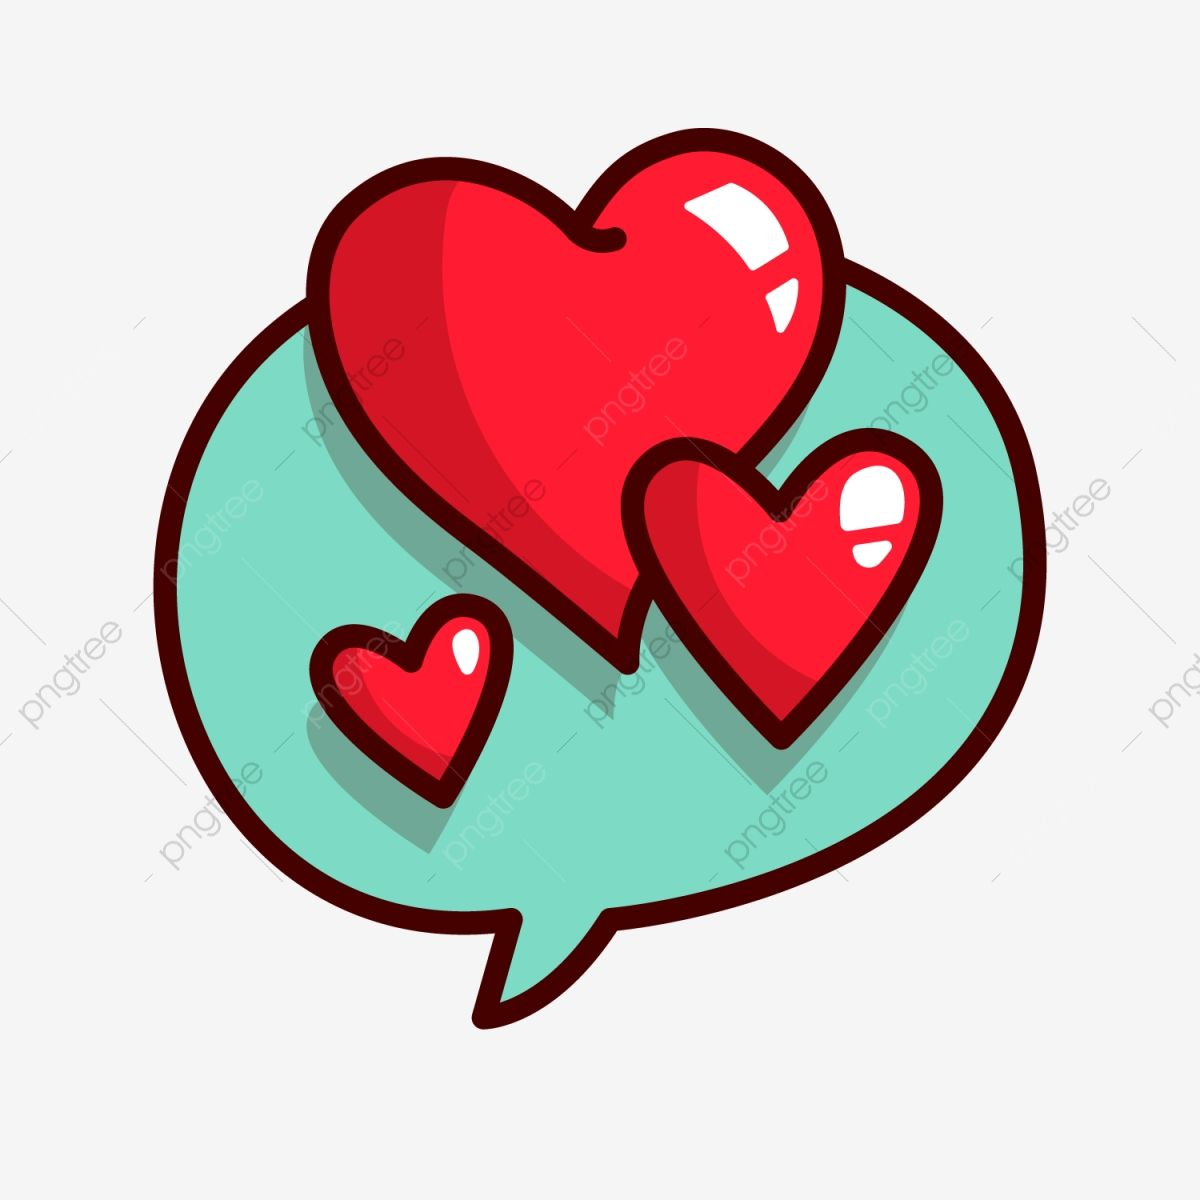 Cartoon Love Red Love Background Decoration Heart Shaped Dialogue Love Clipart Illustration Cartoon Love Png And Vector With Transparent Background For Free Love Heart Drawing Love Stickers Cartoon Heart